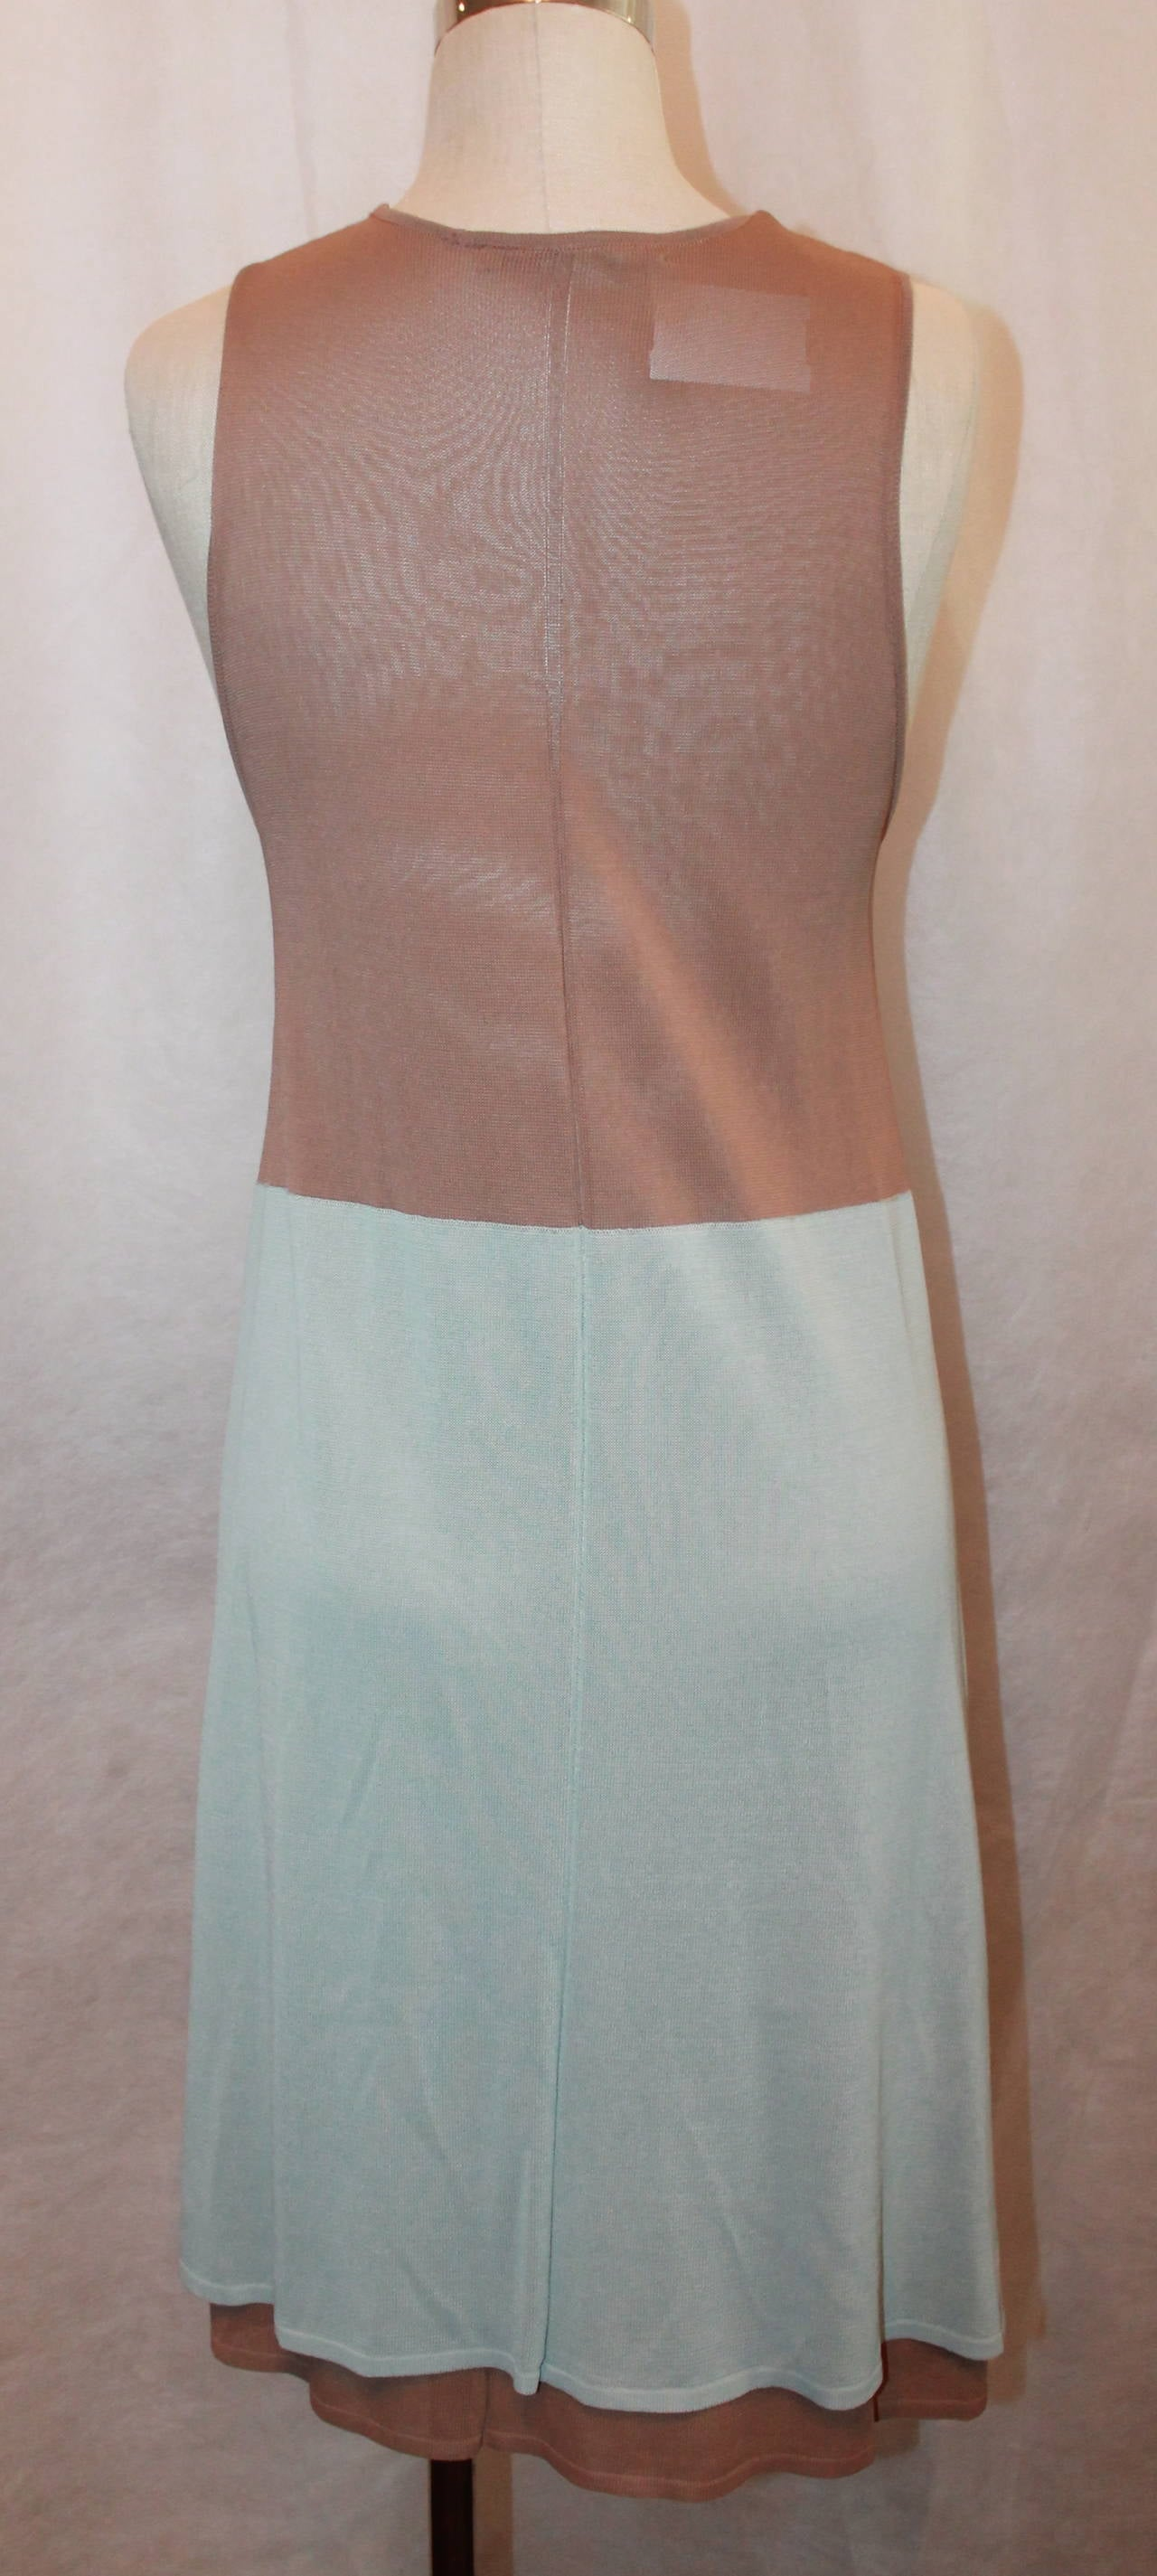 Balenciaga Tan And Pale Blue Sleeveless Dress 42 In Excellent Condition For Palm